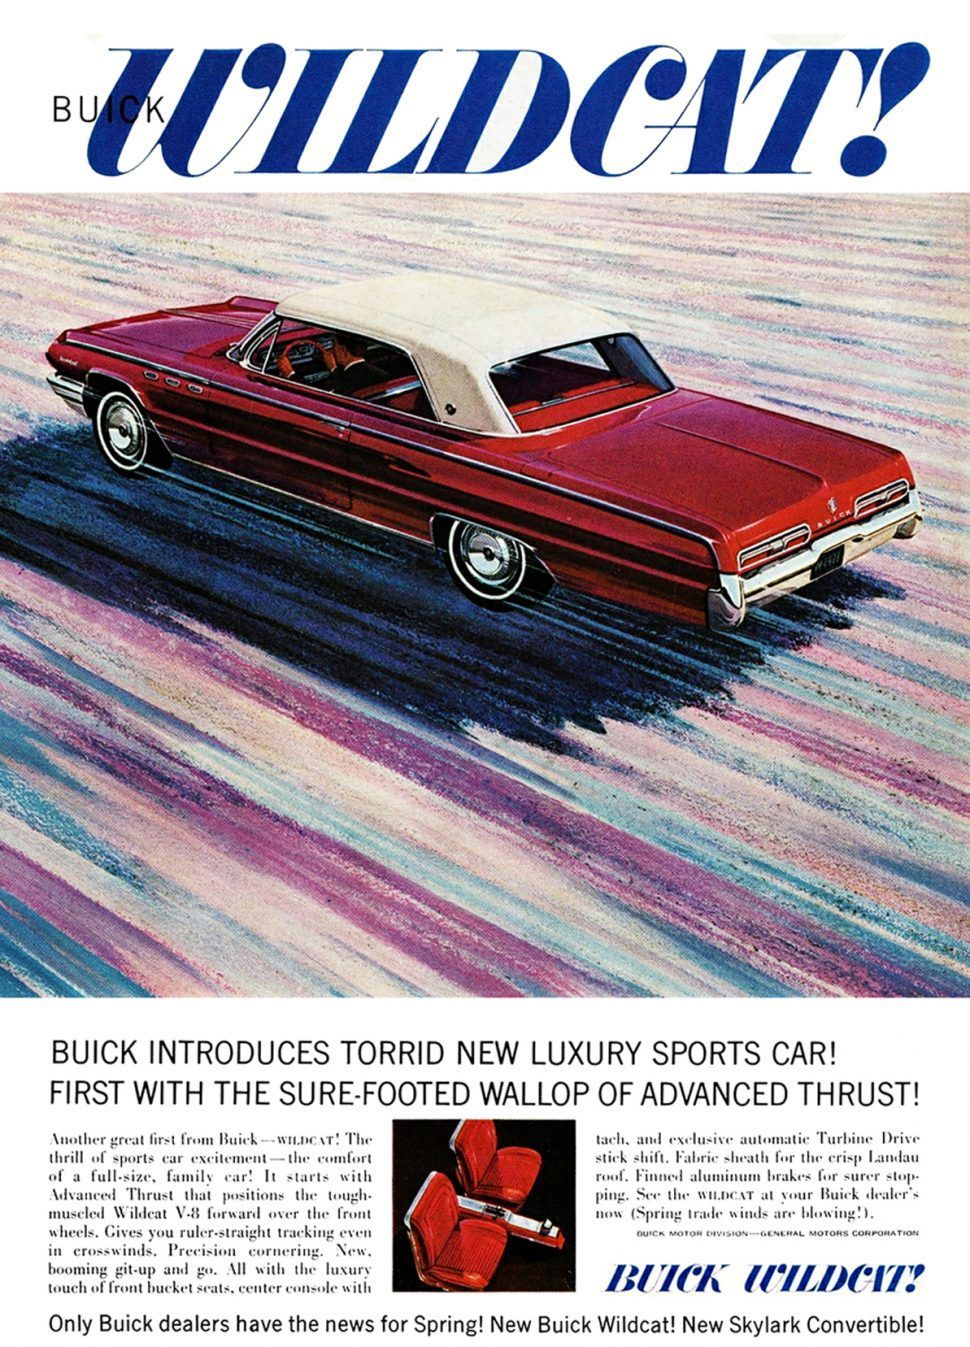 Buick lets a Wildcat loose for 1962 Buick wildcat, Buick